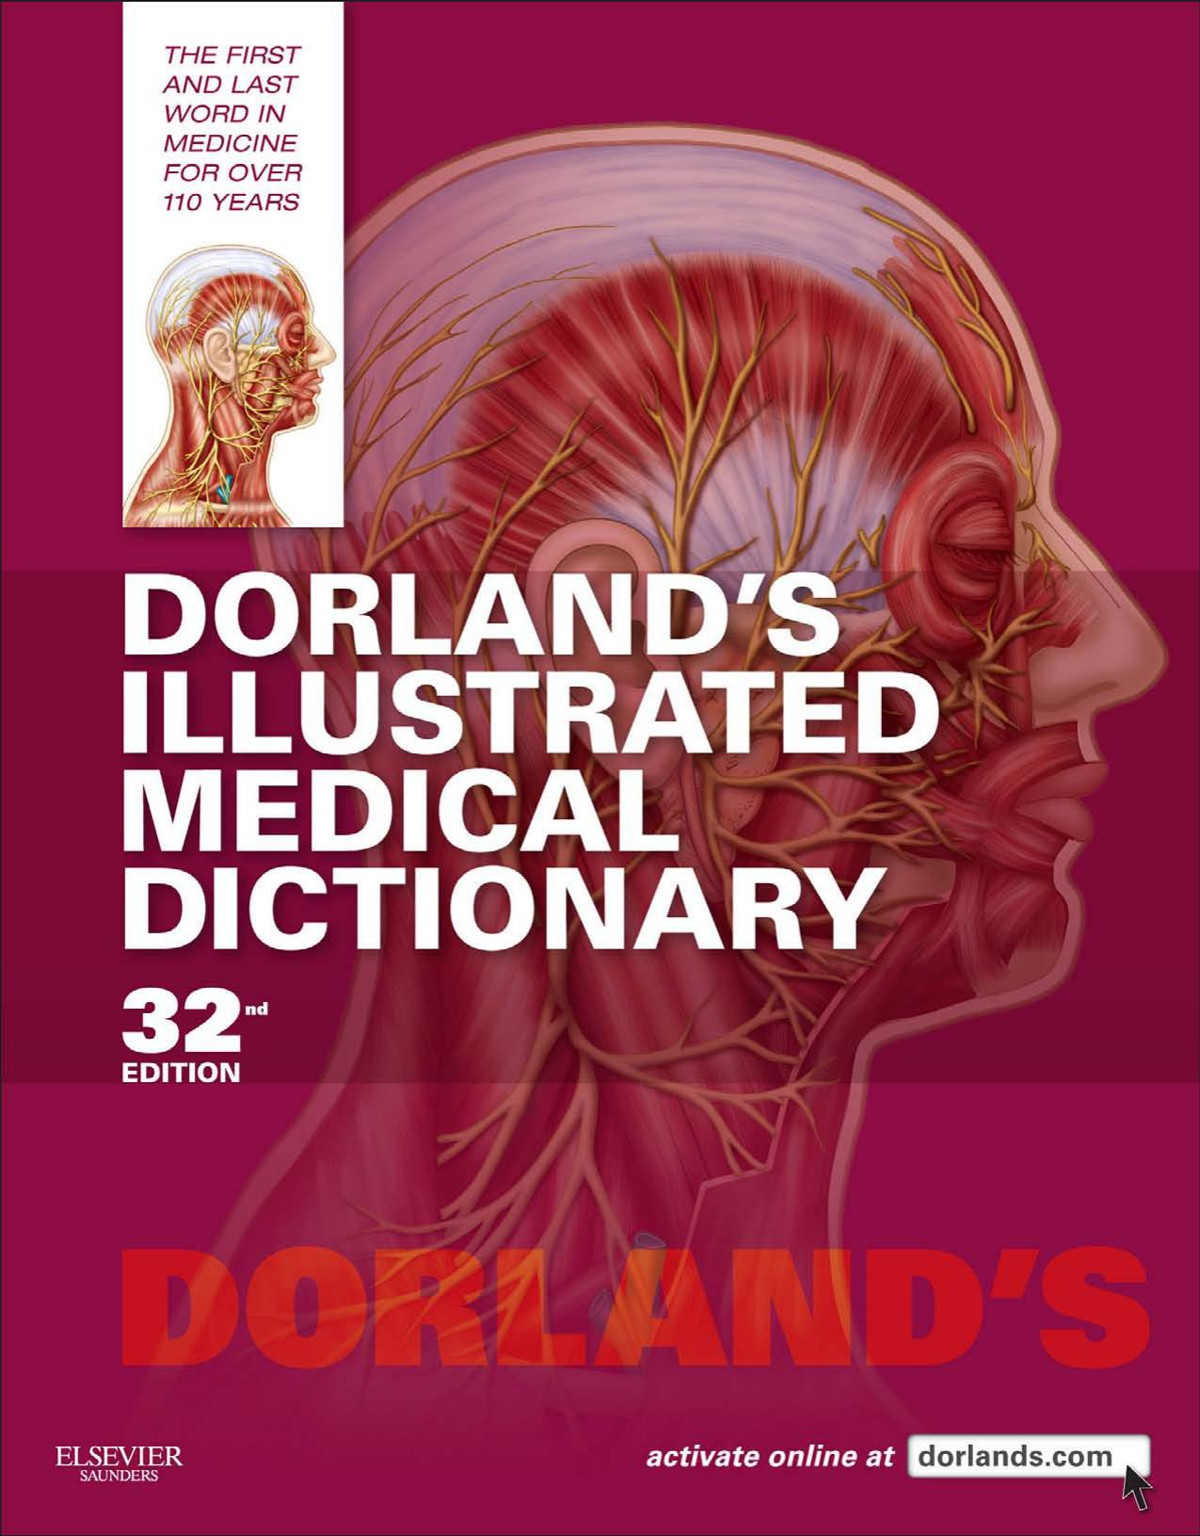 Dorland's Illustrated Medical Dictionary 32nd Edition | Medicos Republic